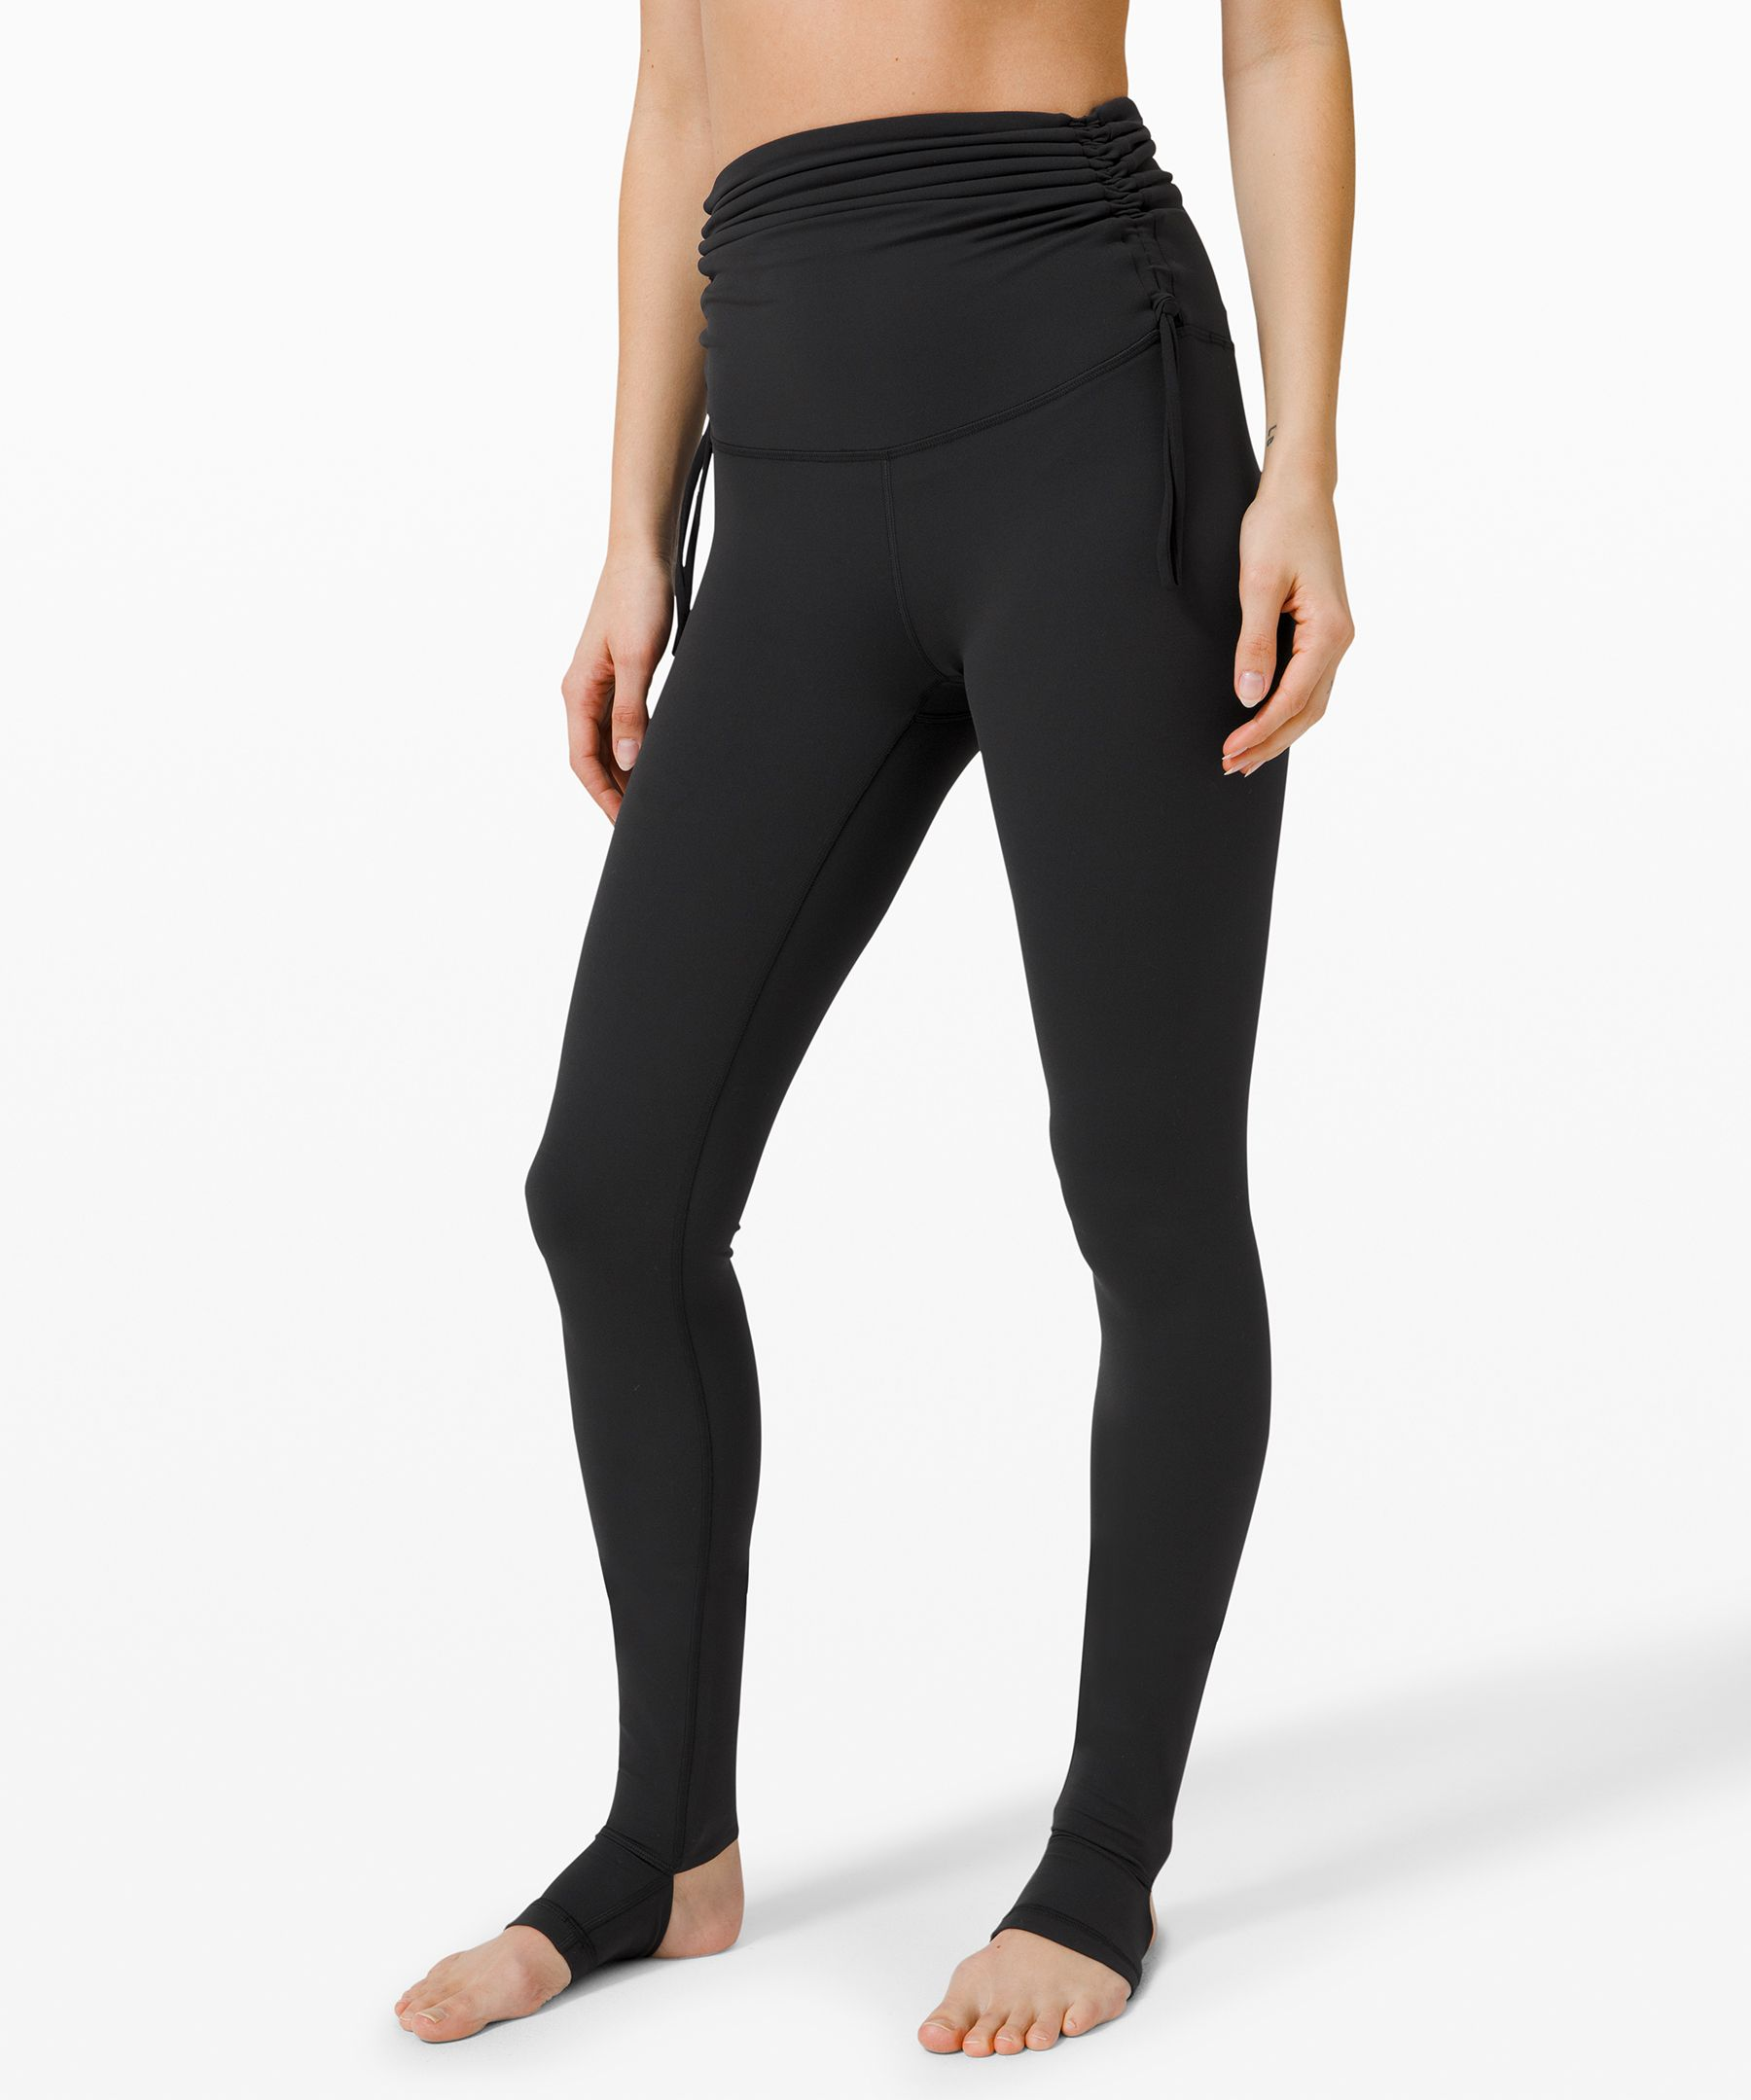 Choose the rise. These tights have a cinchable waistband so you can wear them high for coverage or cinched down.